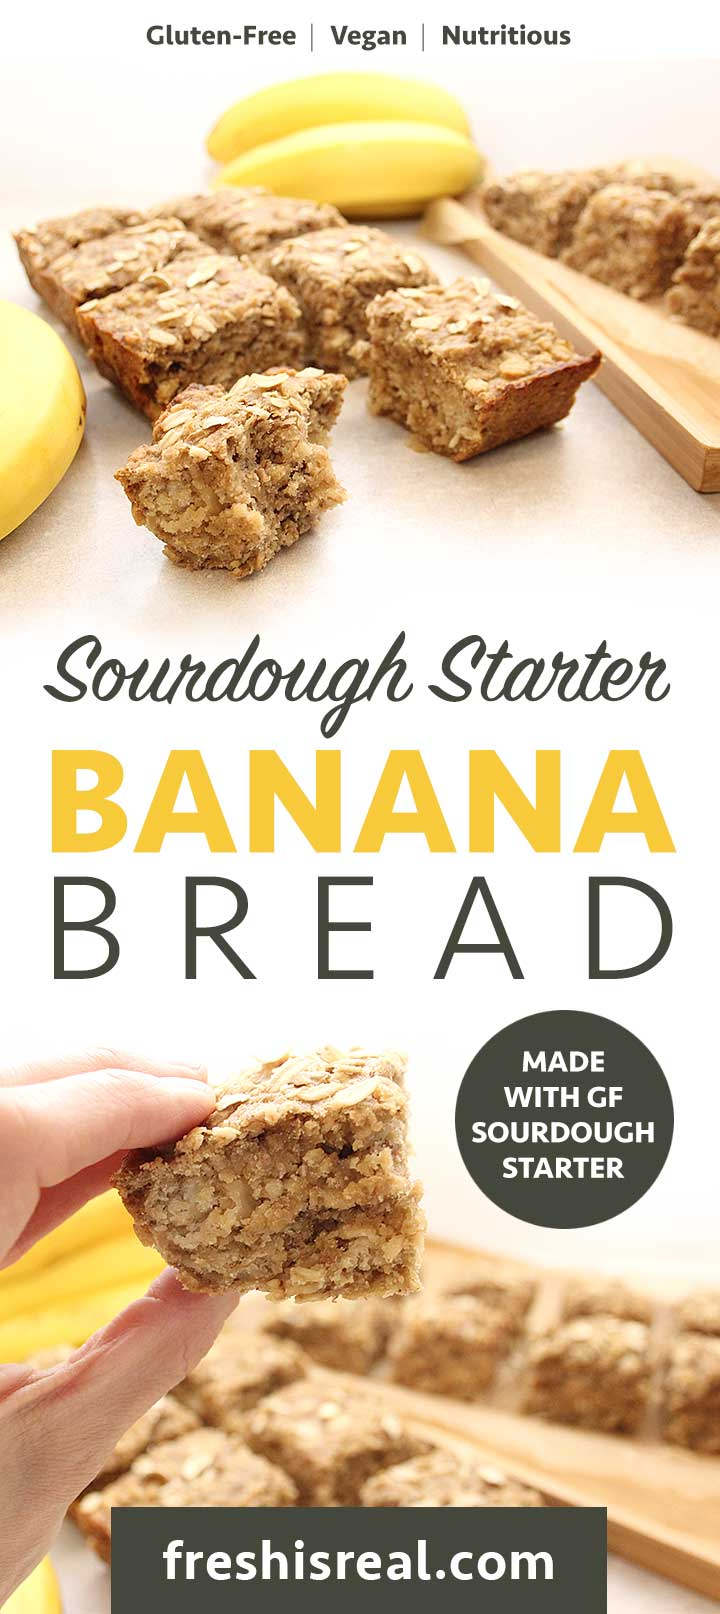 Fresh Sourdough Starter Banana Bread. This quick bread makes 16 servings. Gluten-Free | Vegan | Allergen-Friendly freshisreal.com